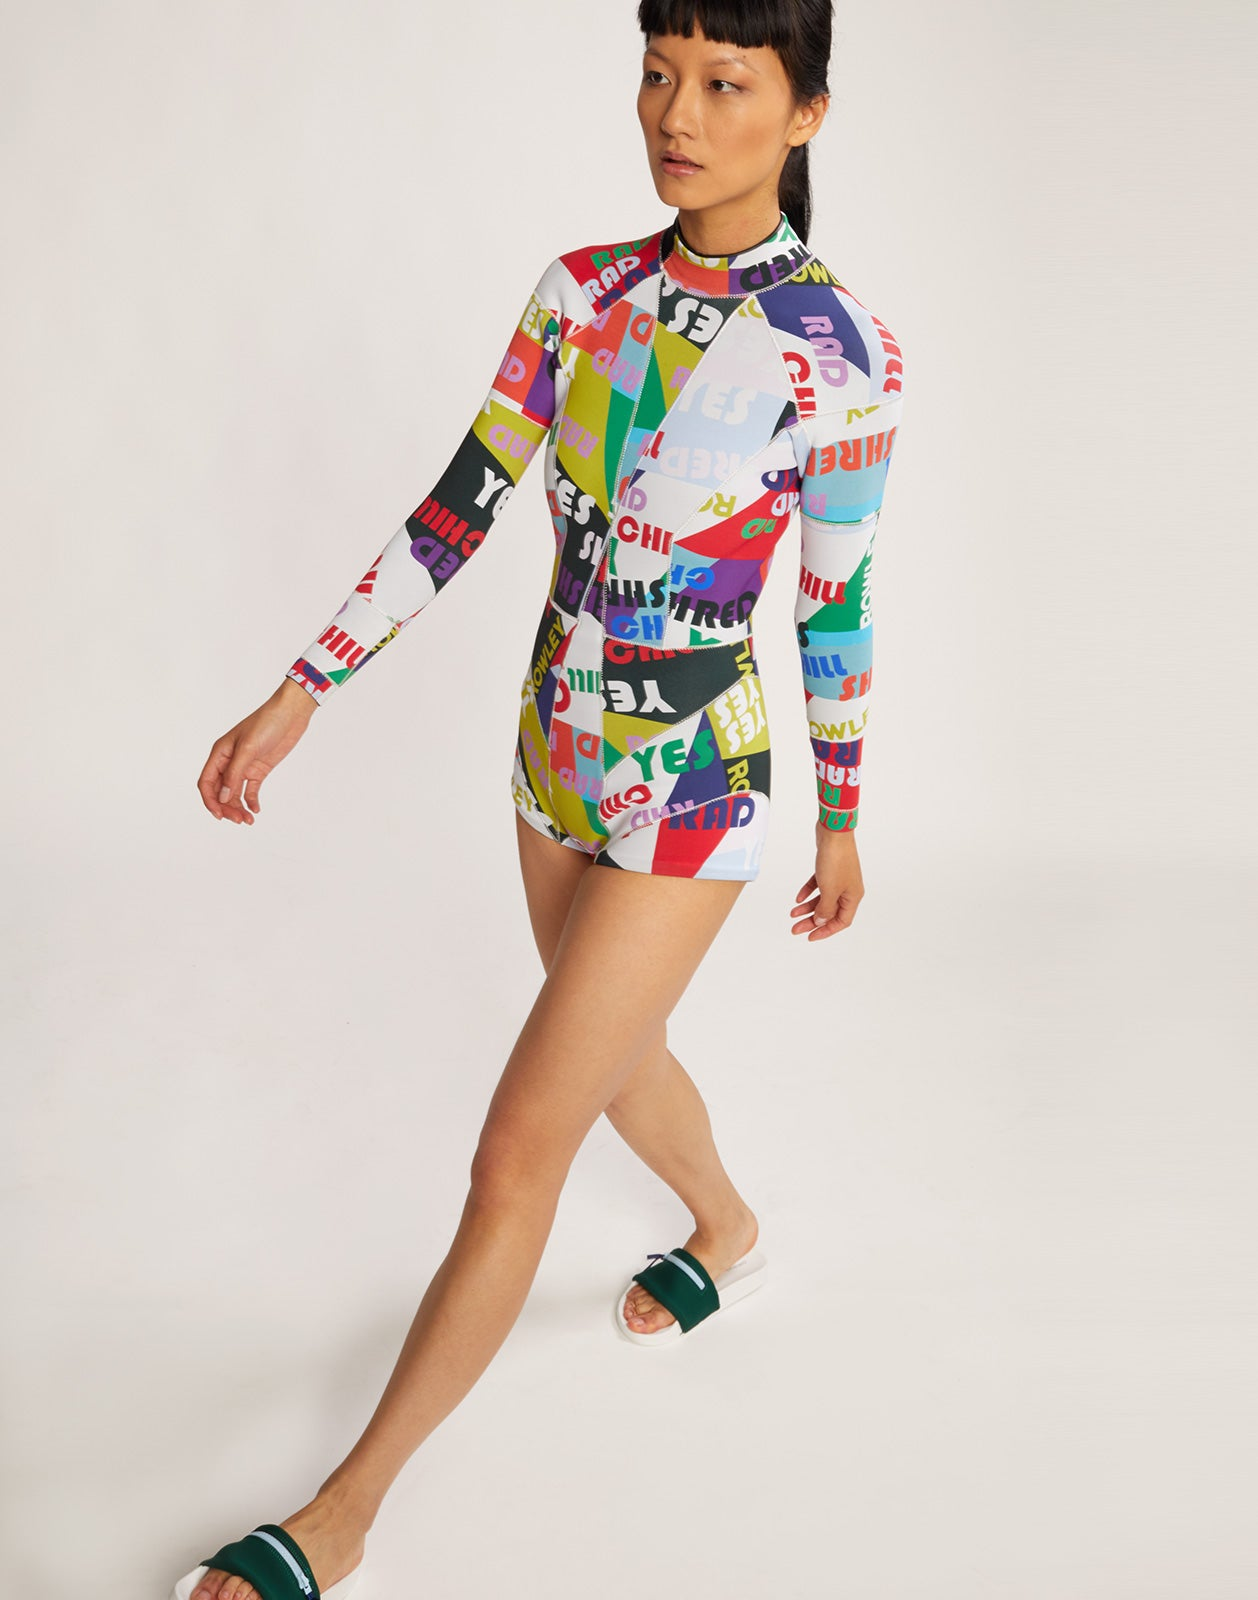 Model walking in the Good Vibes neoprene wetsuit in good vibes graphic words print.